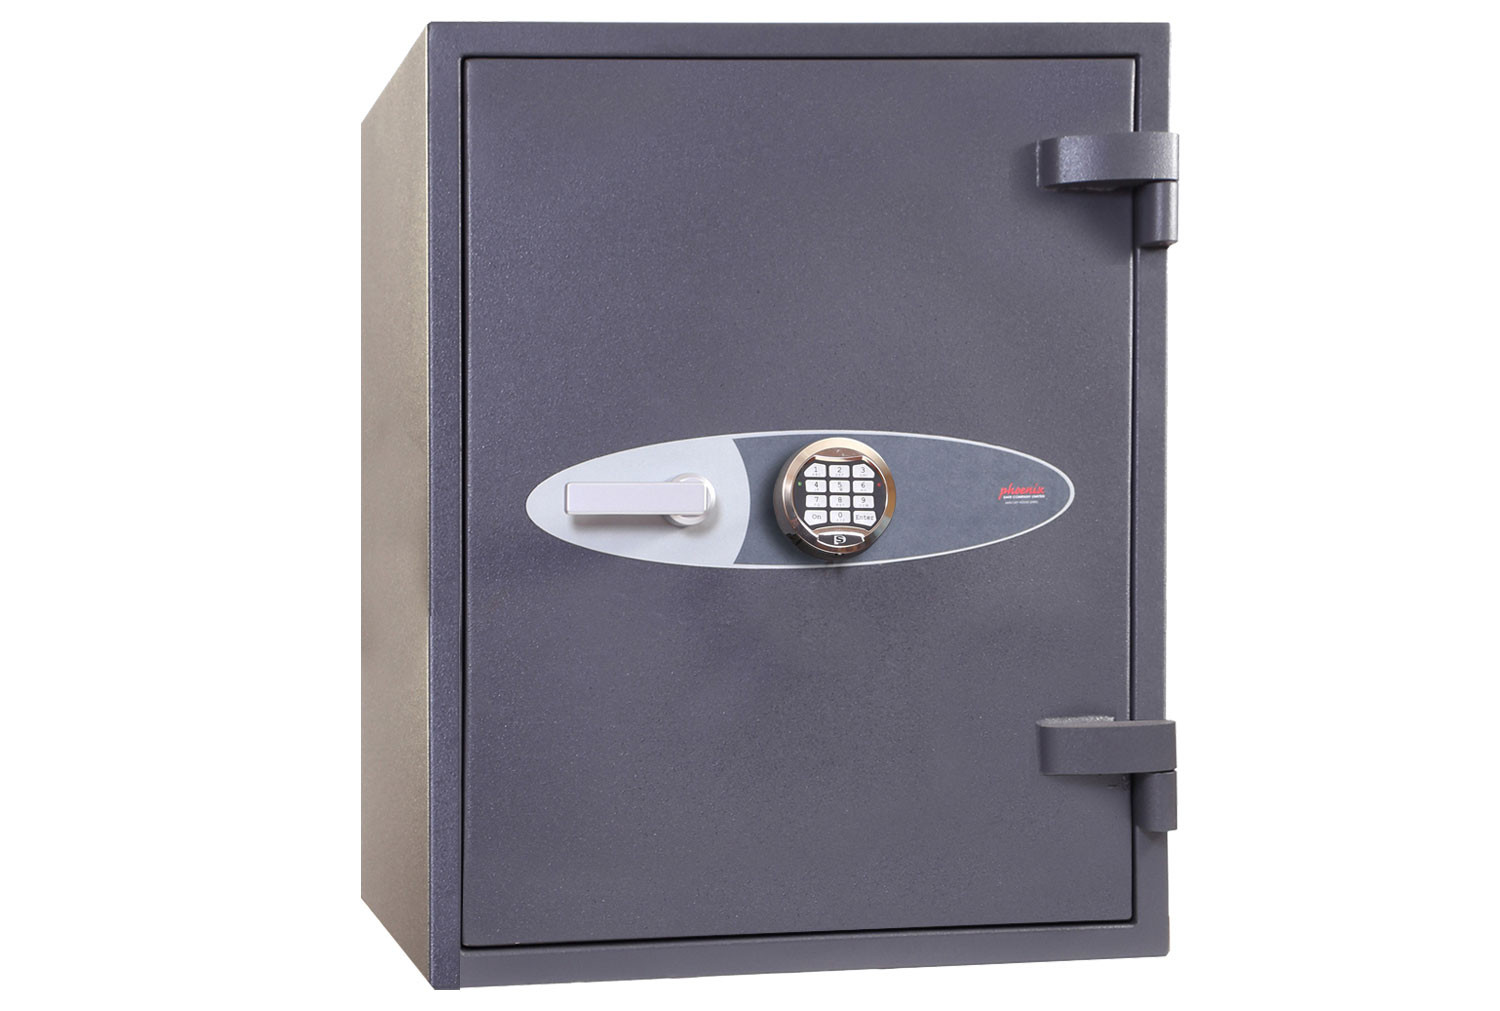 Phoenix Neptune HS1054E High Security Safe With Electronic Lock (184ltrs)